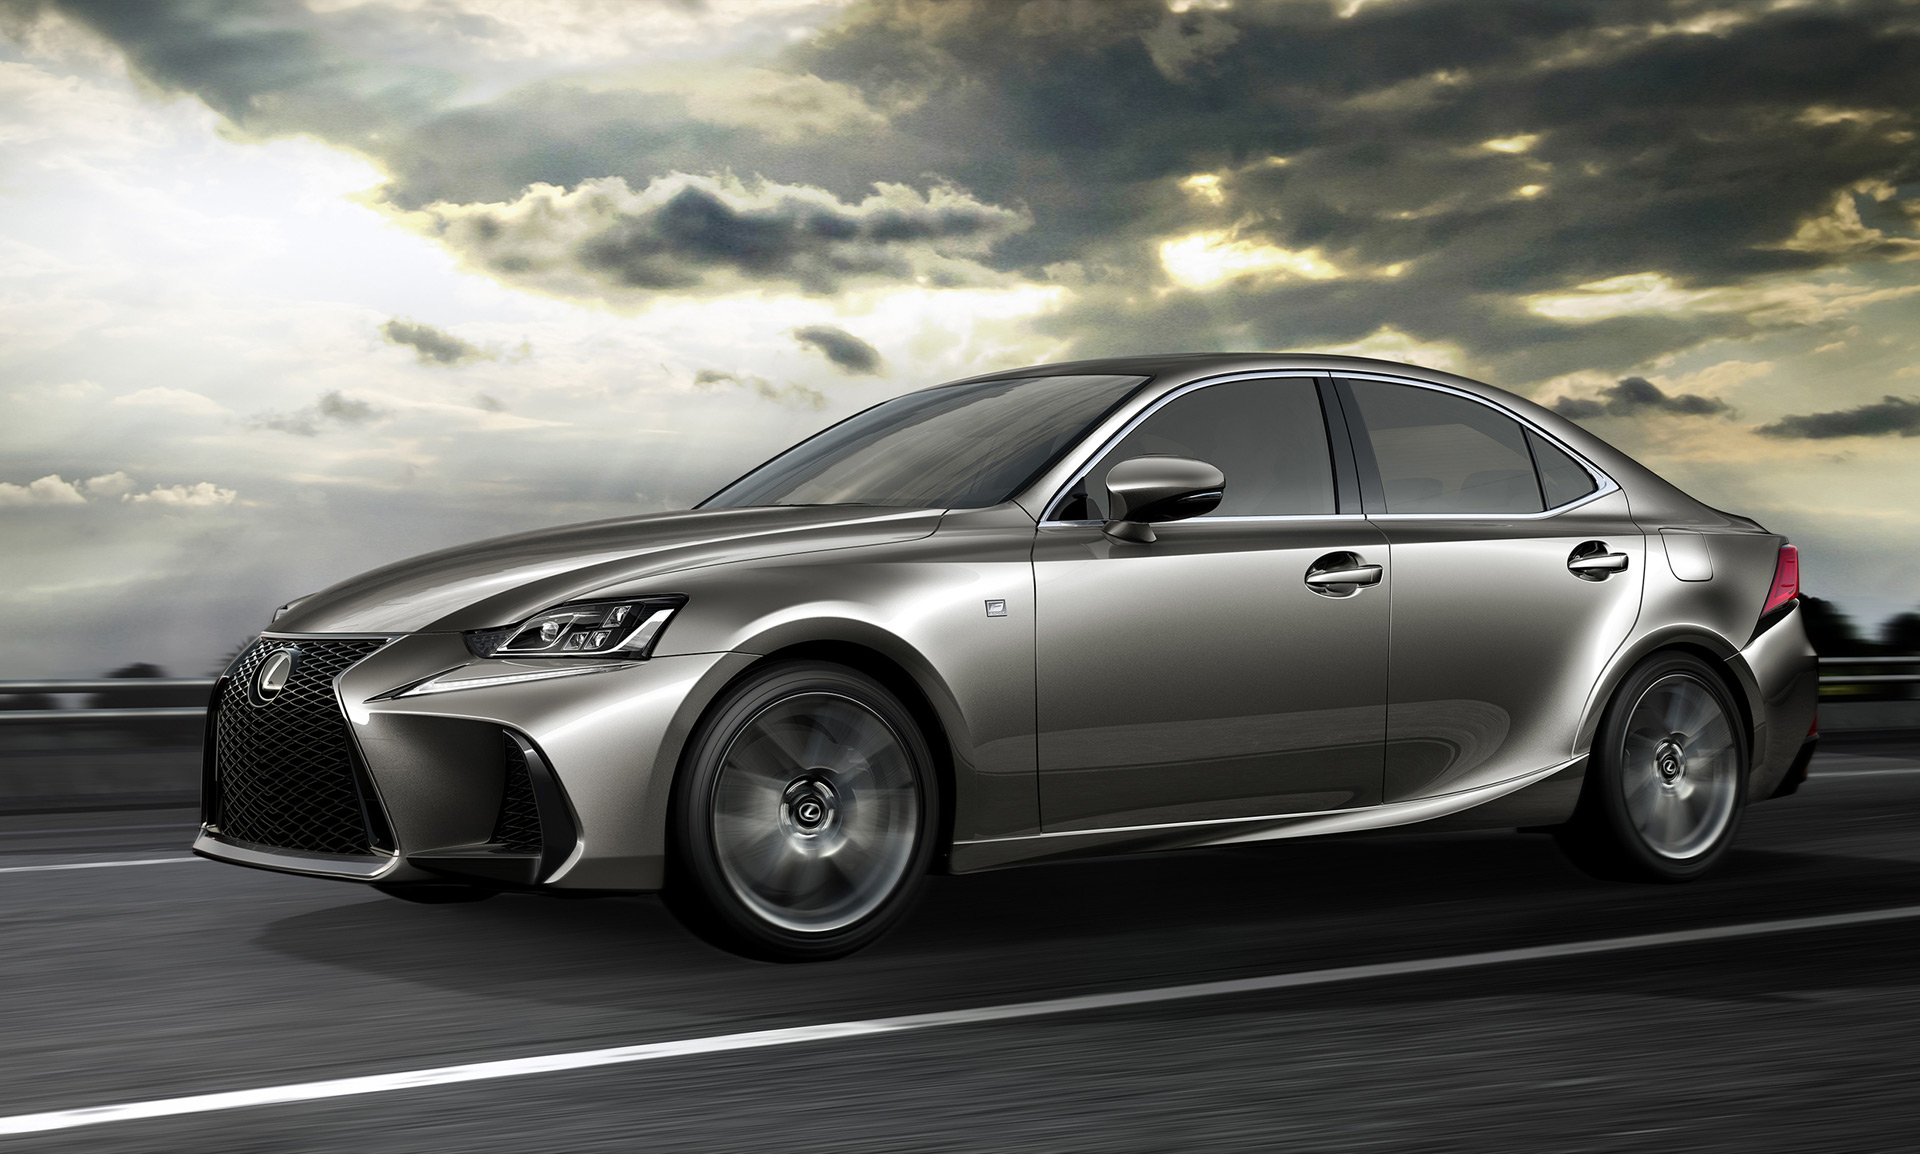 Used Cars Colorado Springs >> 2017 Lexus IS Review, Ratings, Specs, Prices, and Photos - The Car Connection